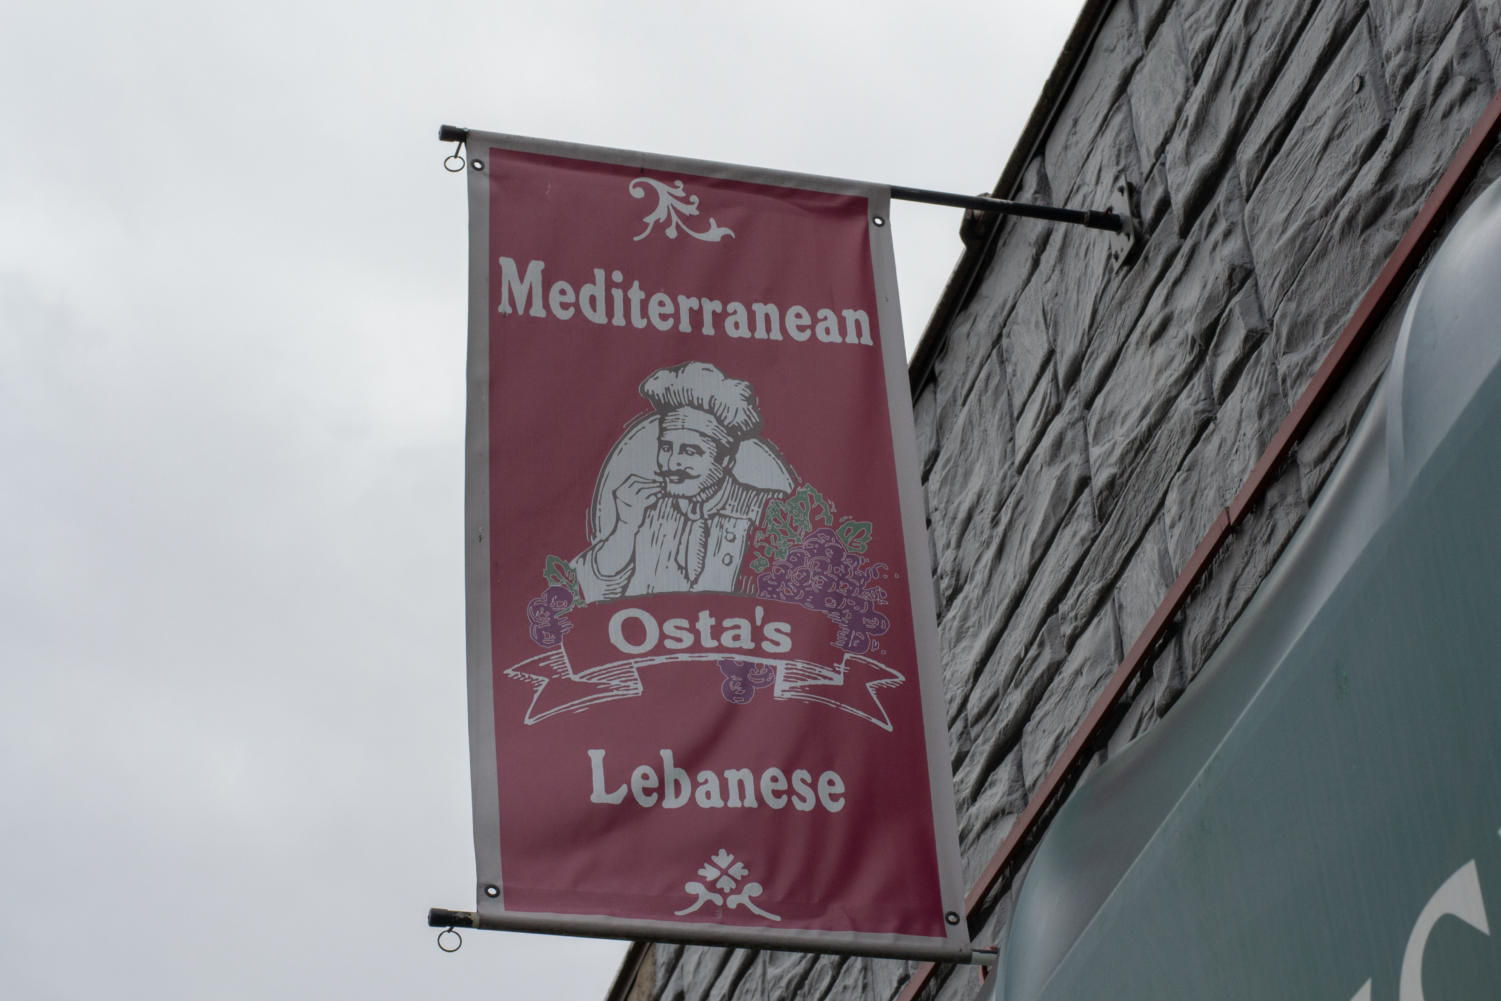 Osta's Lebanese Cuisine in Gaslight reopened in November after being closed due to an injury affecting their only chef, John Aouad.